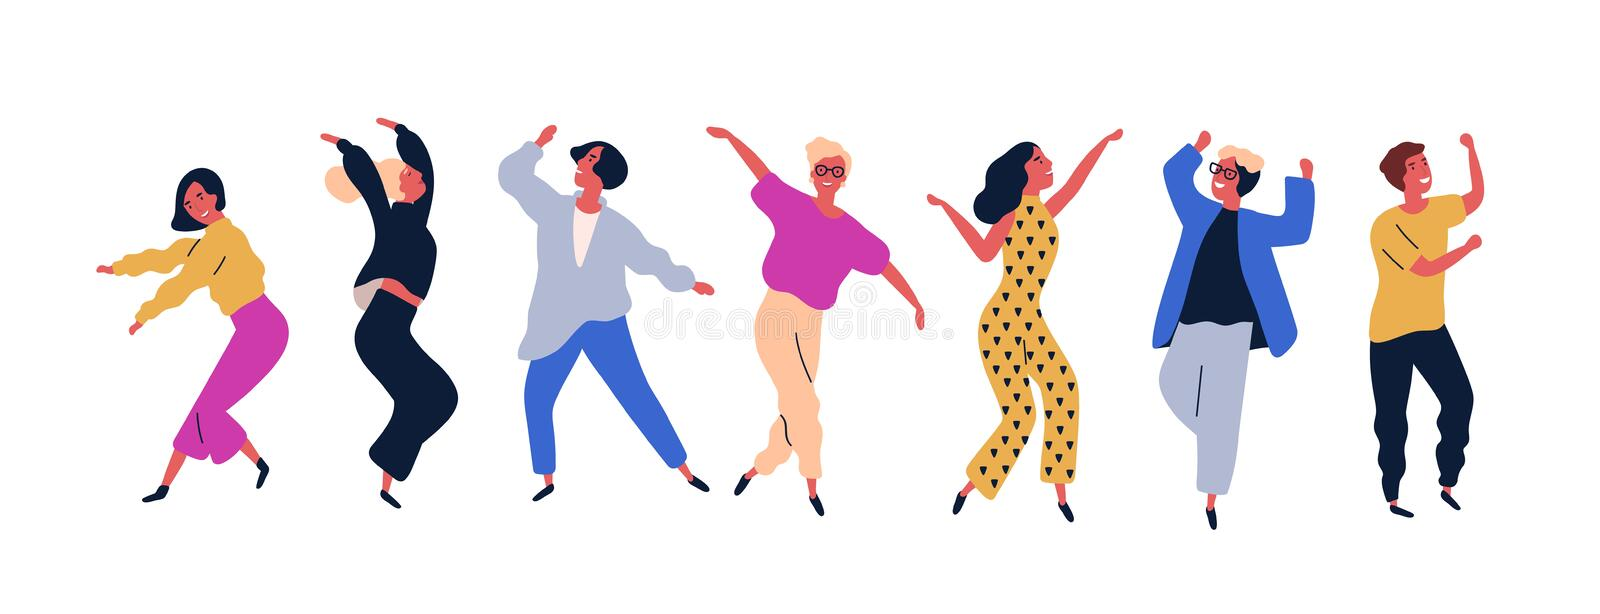 Group of young happy dancing people or male and female dancers isolated on white background. Smiling young men and women stock illustration